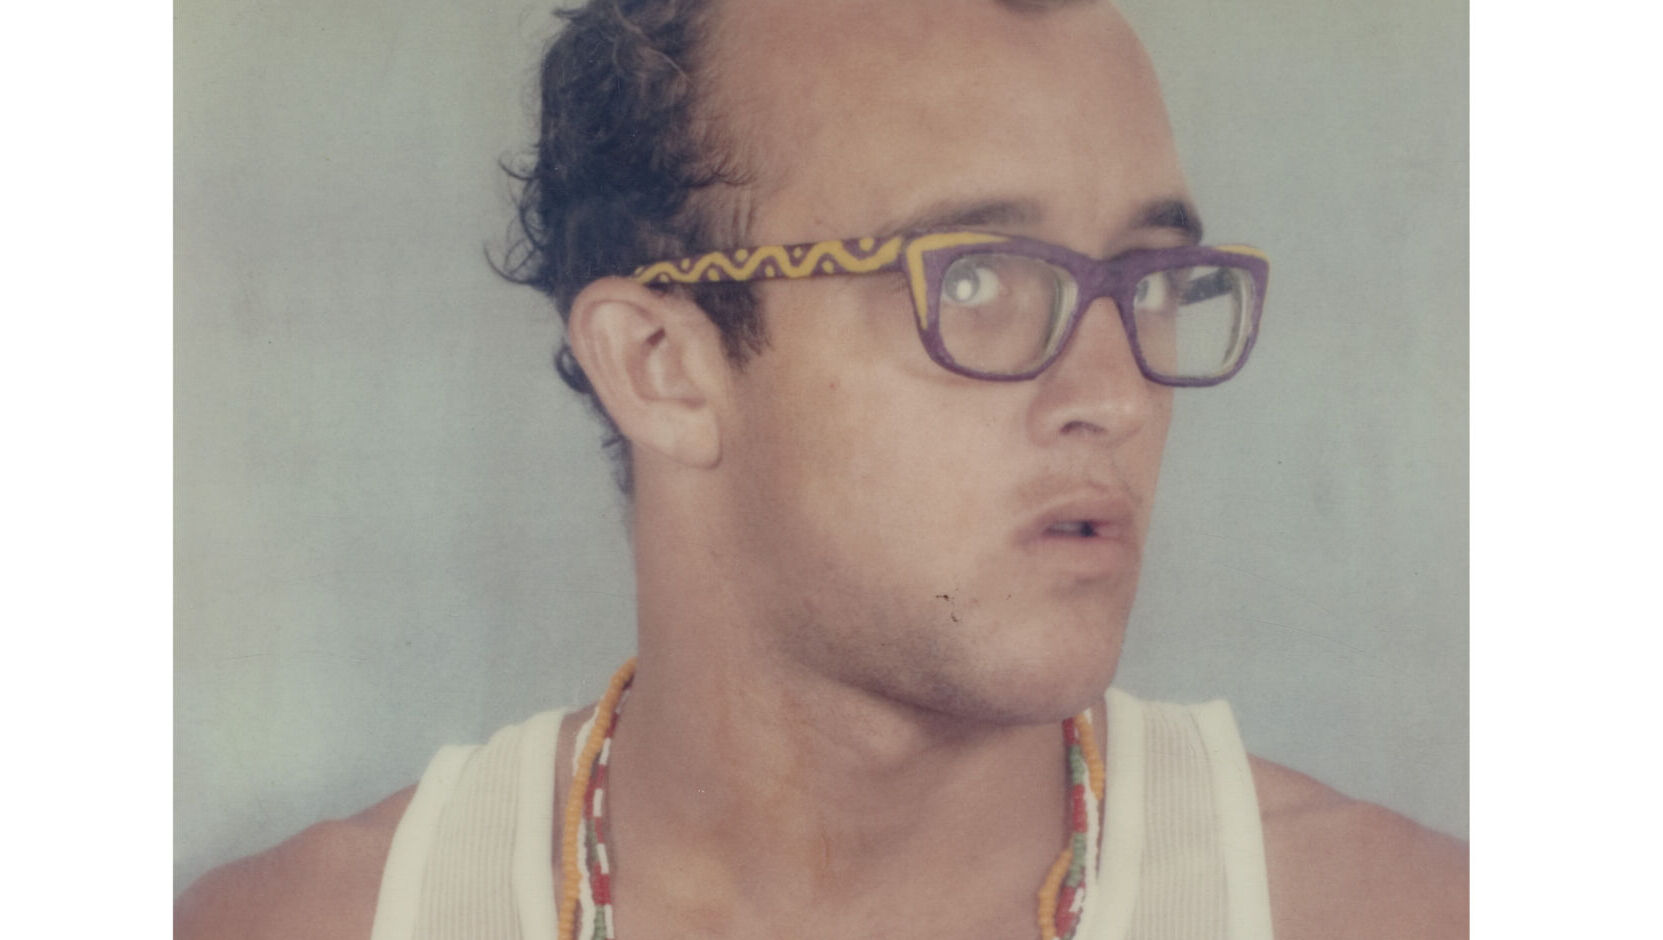 Keith Haring as adult, in a overexposed photo. He wears a white undershirt and multicolored solid-color bead necklaces. His eyeglasses have decorative pattern arm. His hair appears a bit curly and wet.